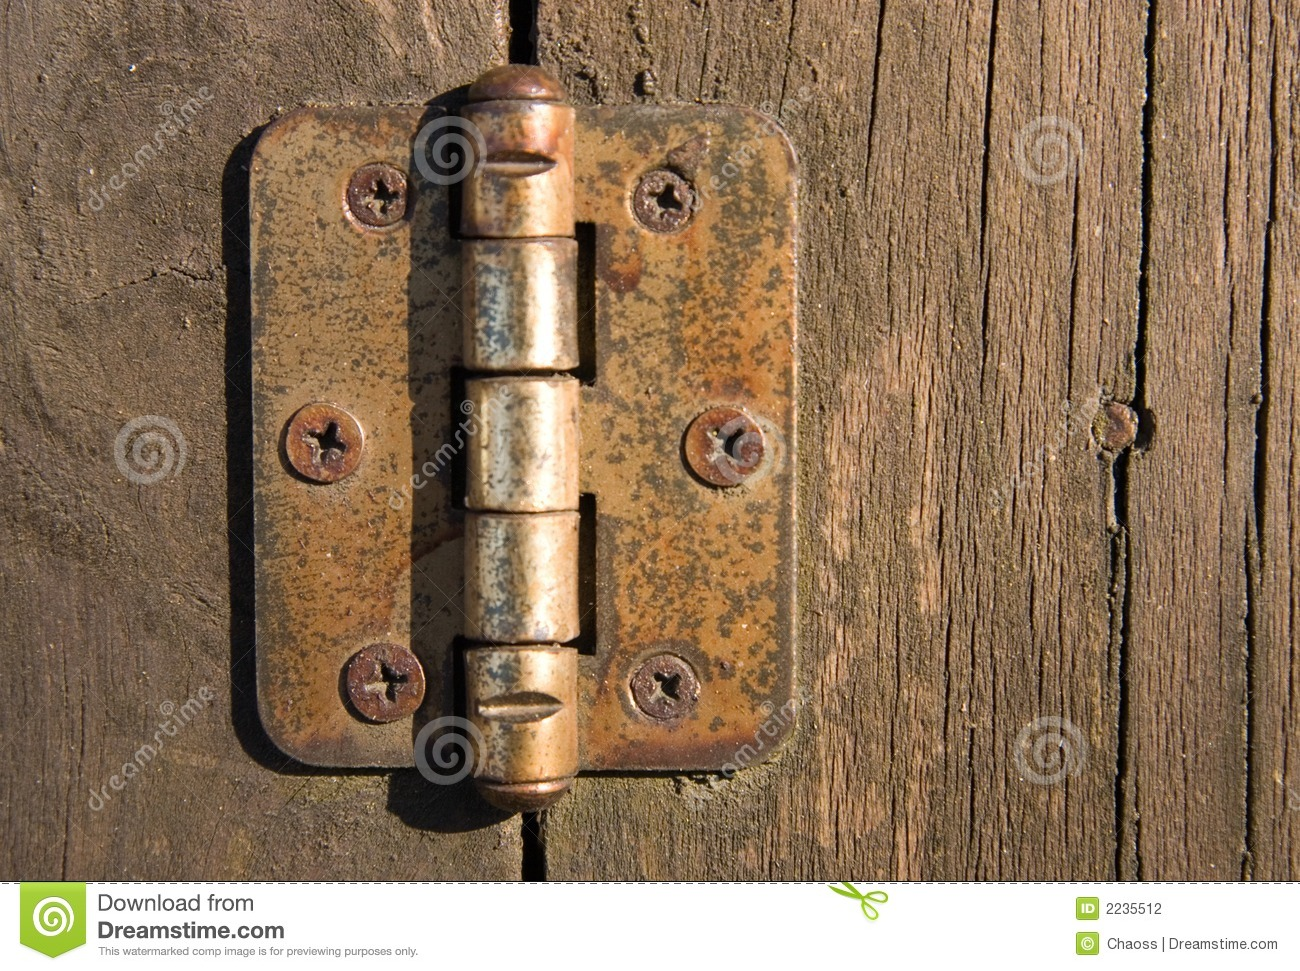 Royalty-Free Stock Photo. Download Door hinge ... : door hinger - pezcame.com